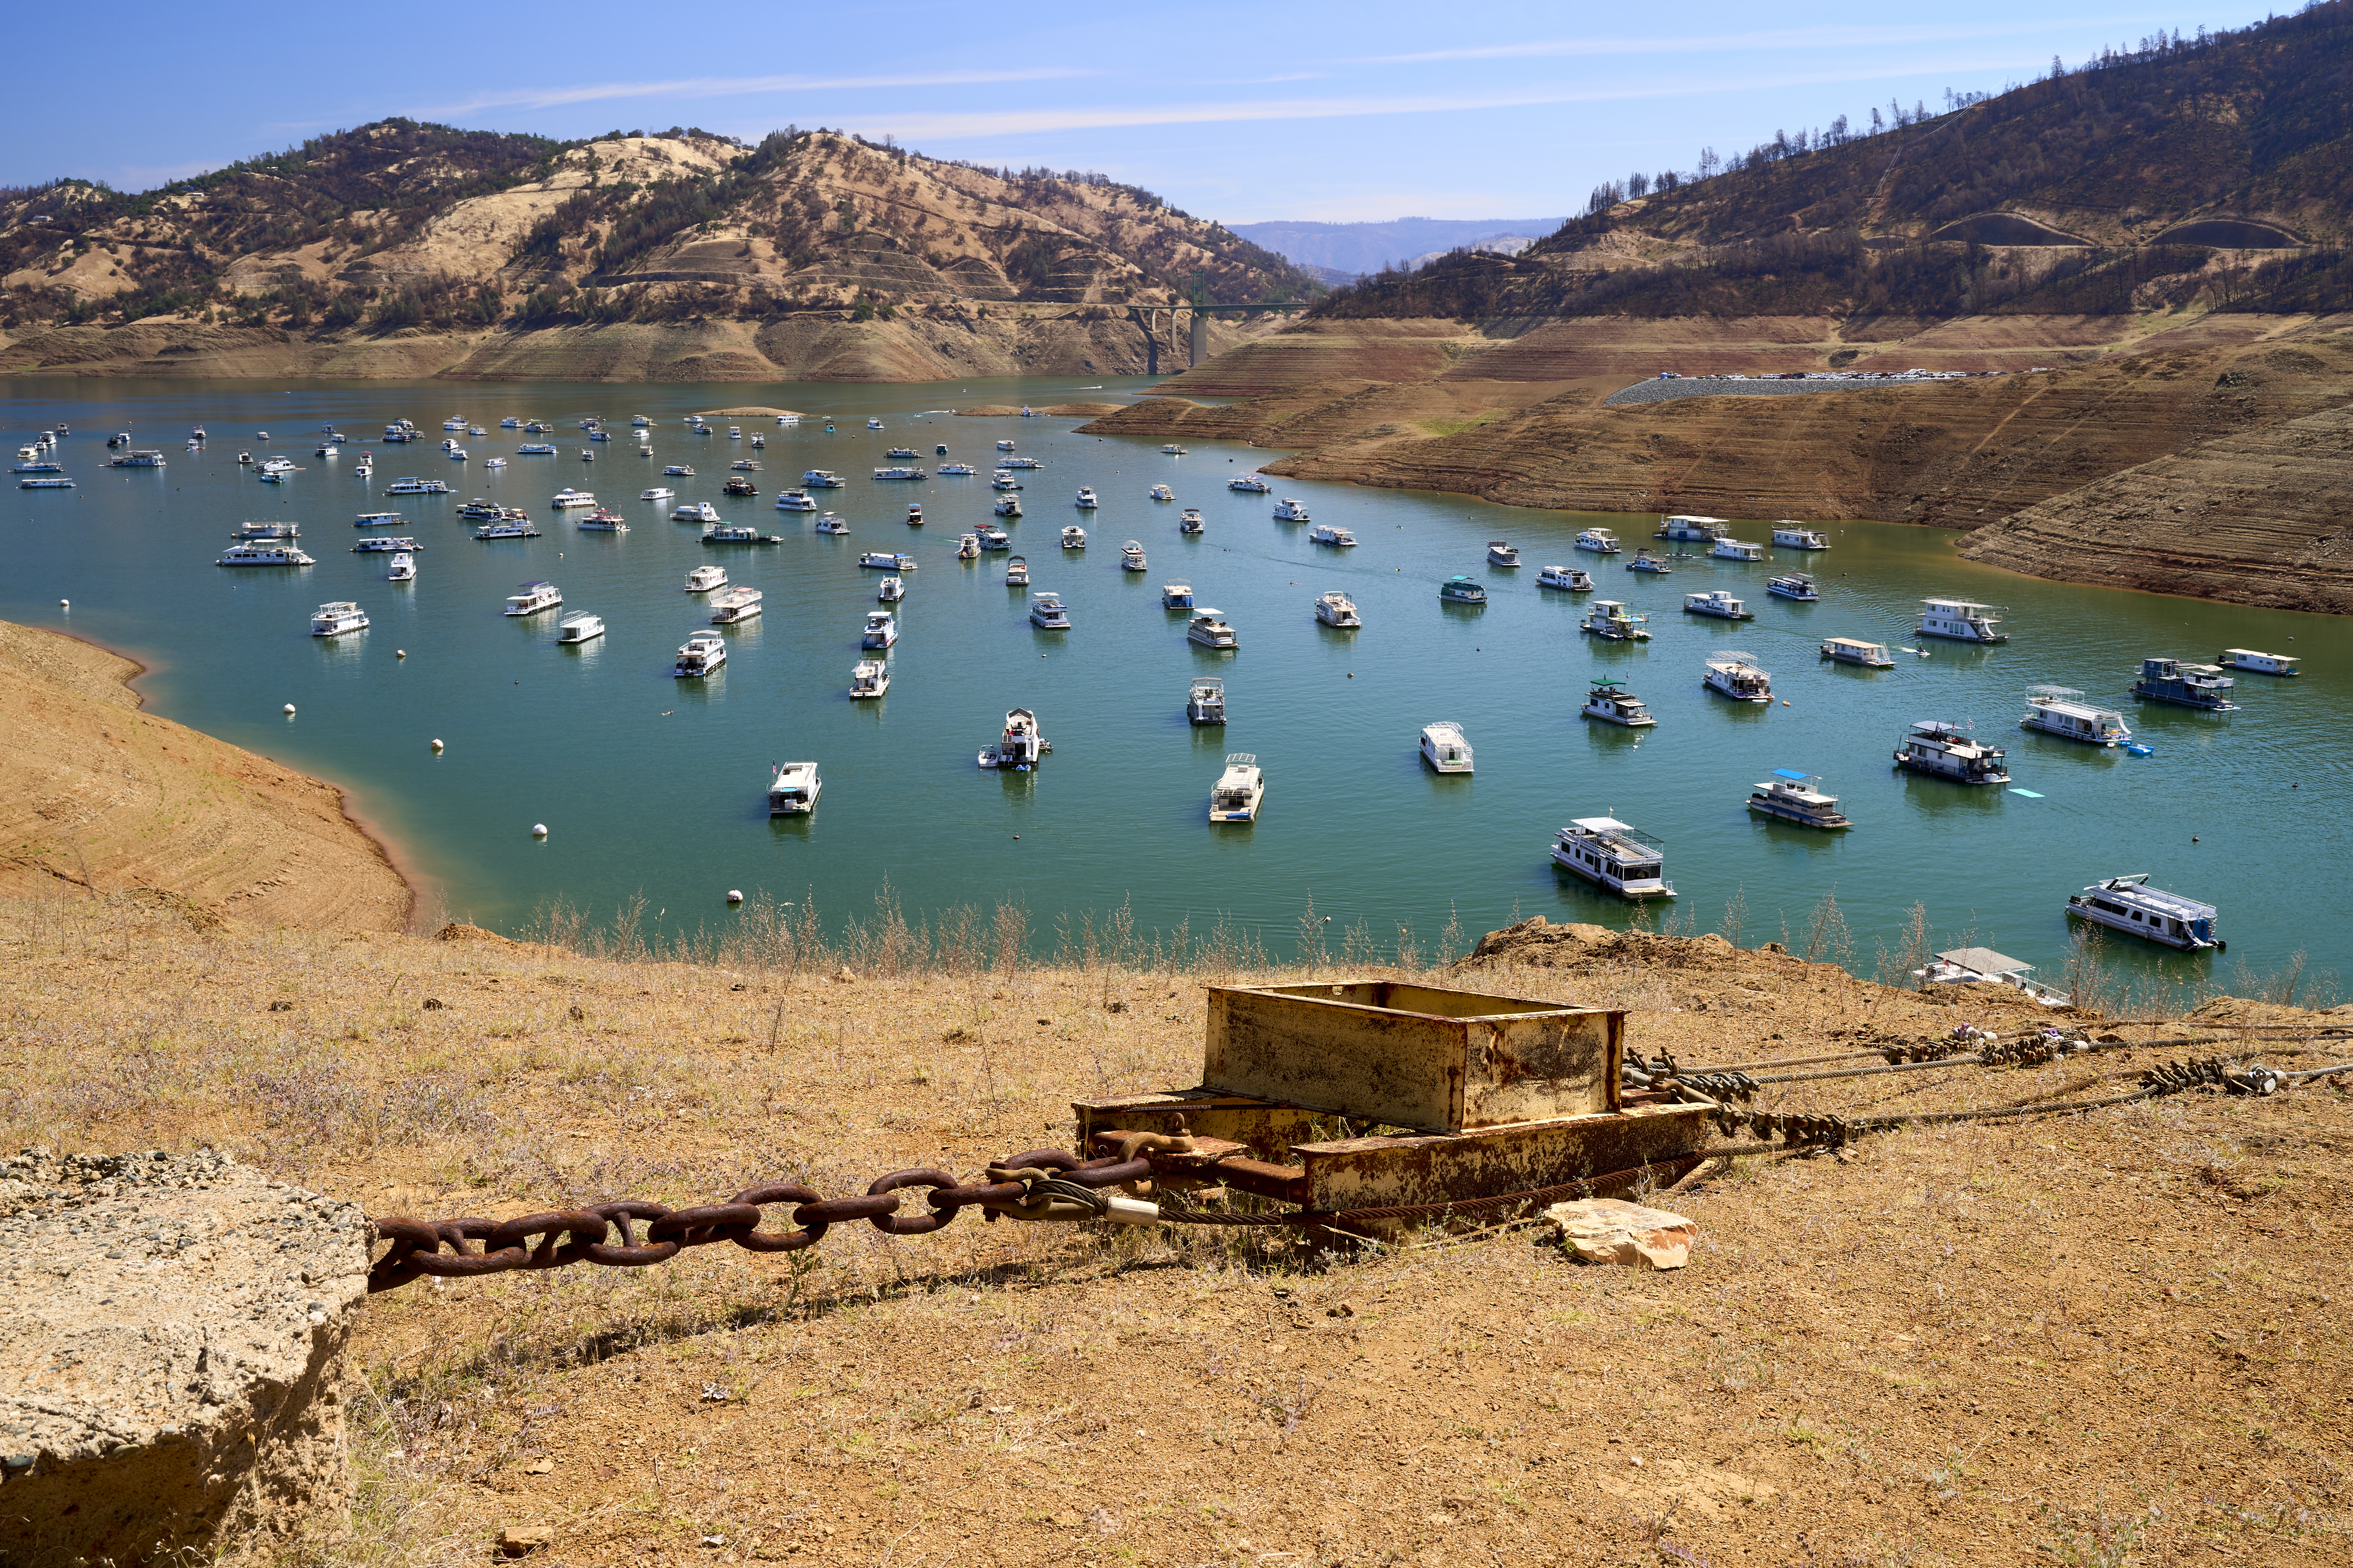 Drought Seriously Threatens Hydro-Electric Power in California